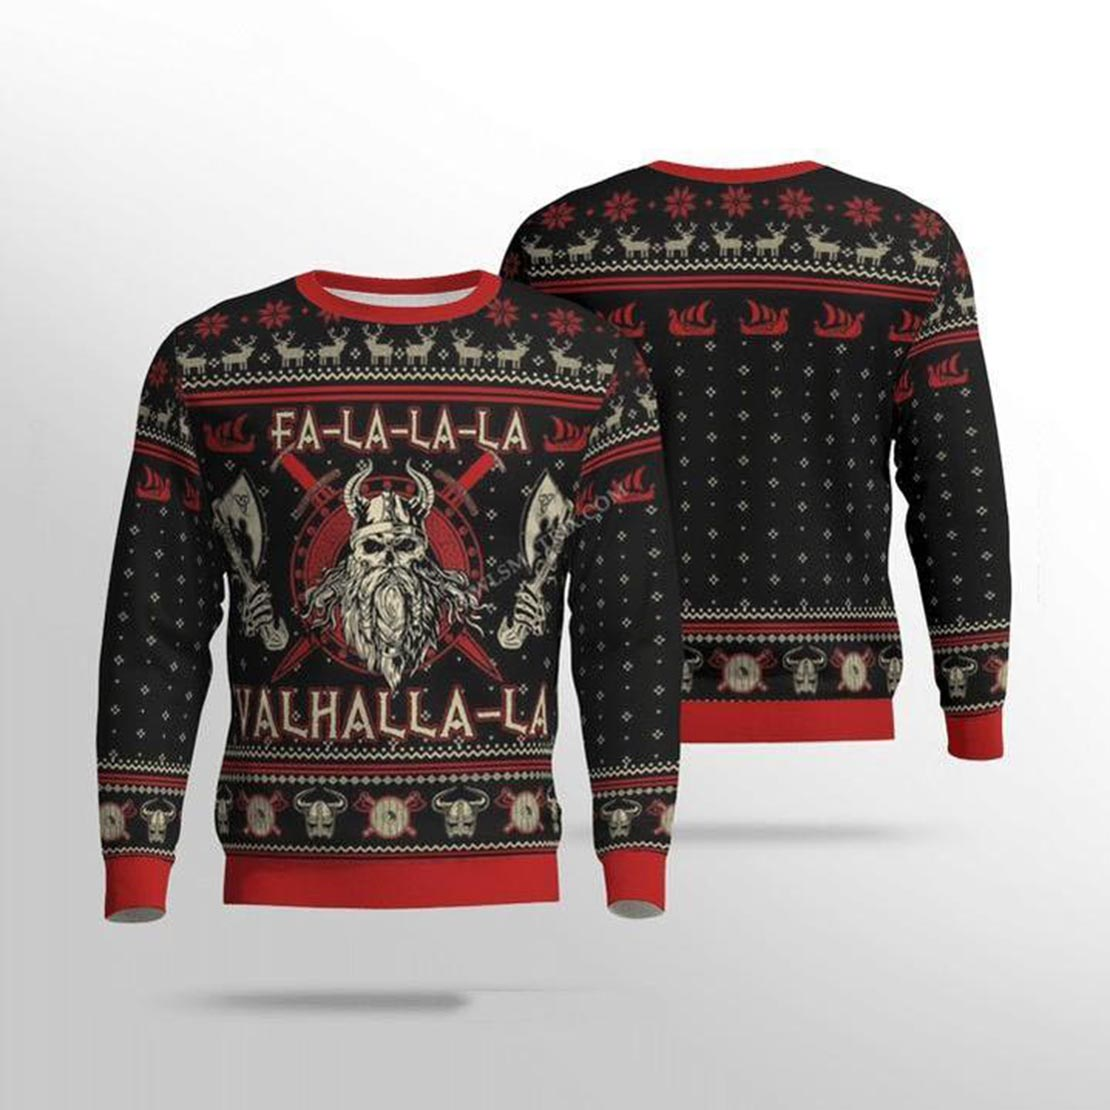 Viking valhalla black and red 3d sweater